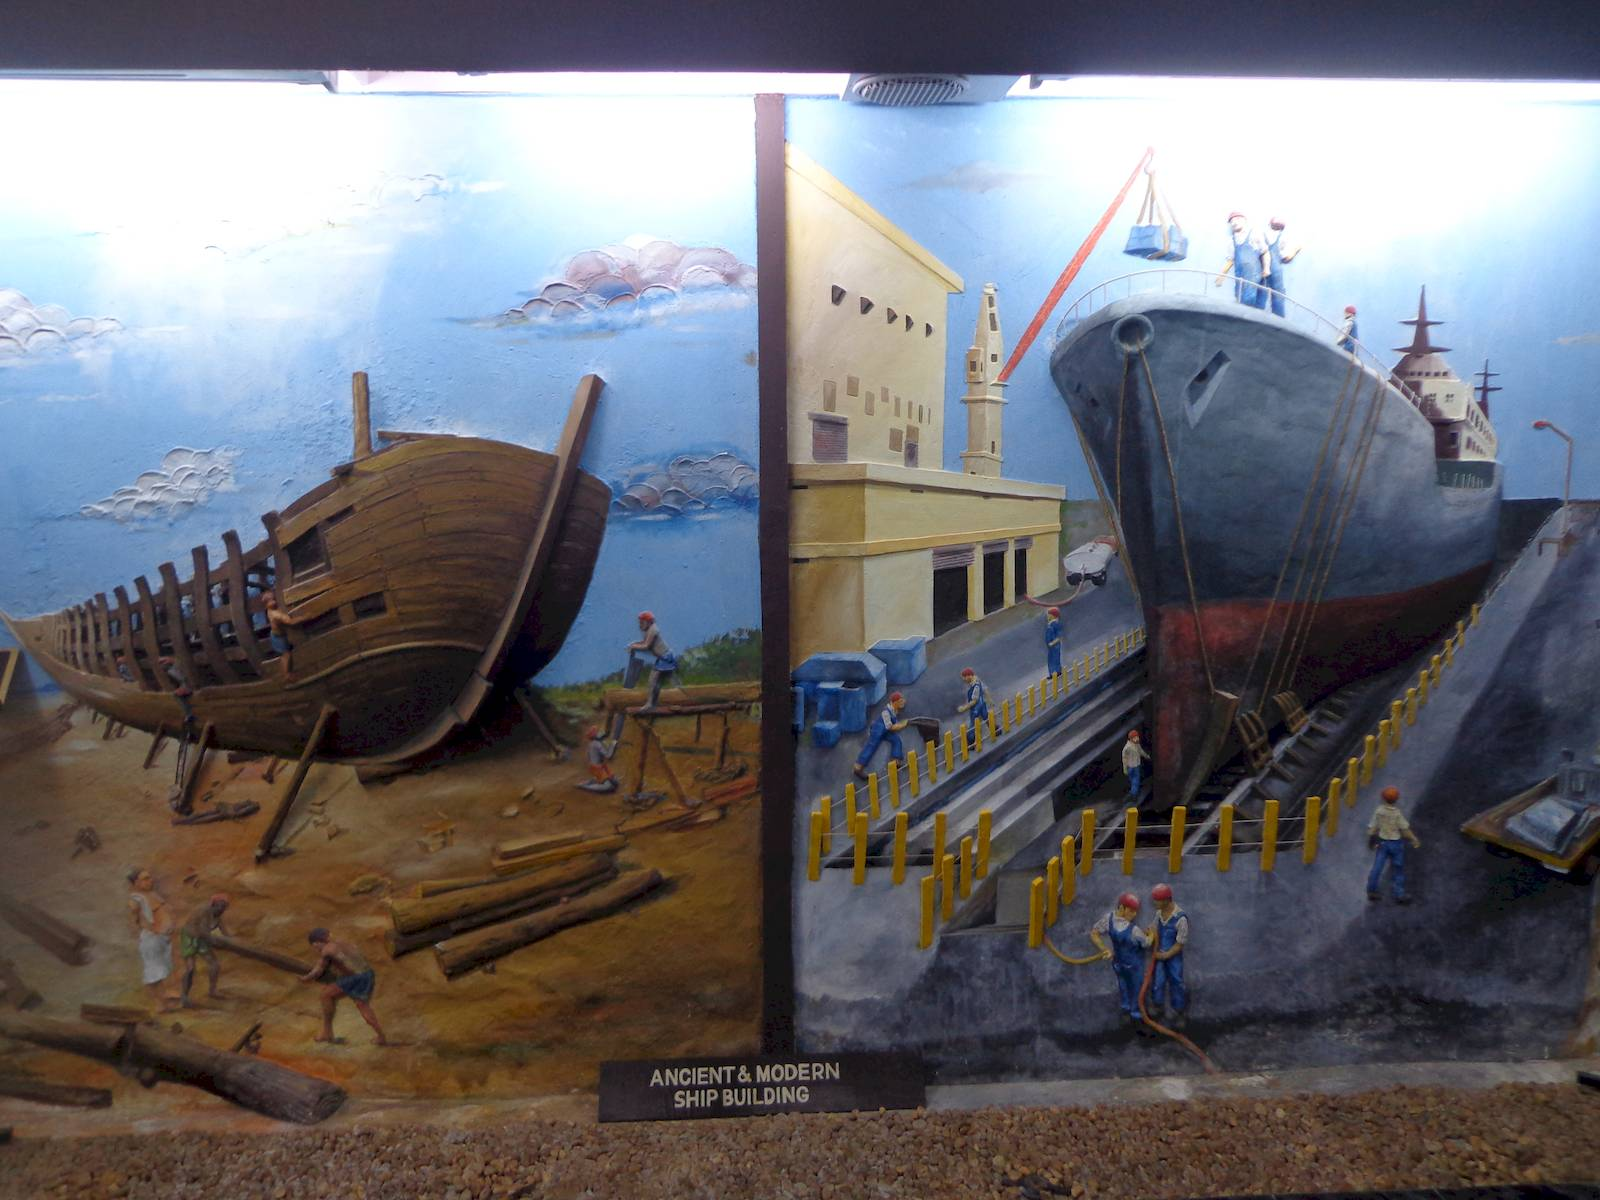 A relief comparing medieval and modern shipbuilding methods in Calicut.